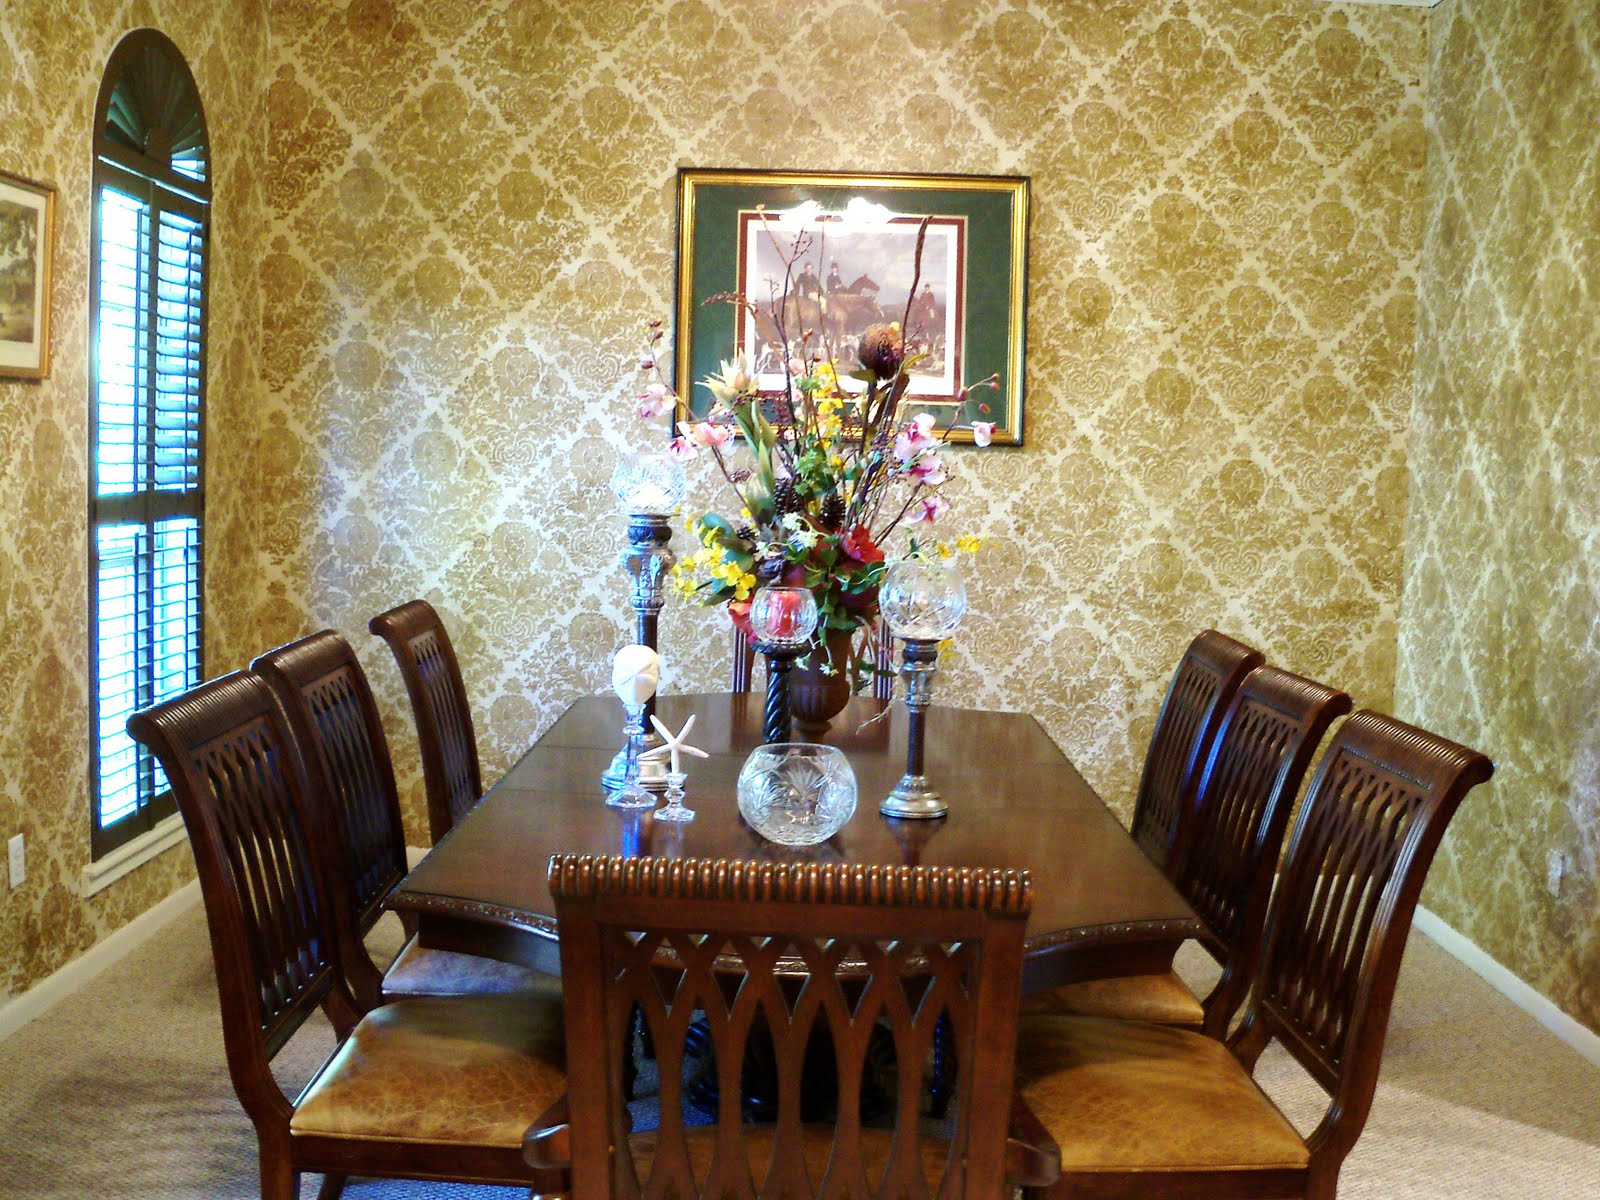 Wallpaper Ideas For Dining Room